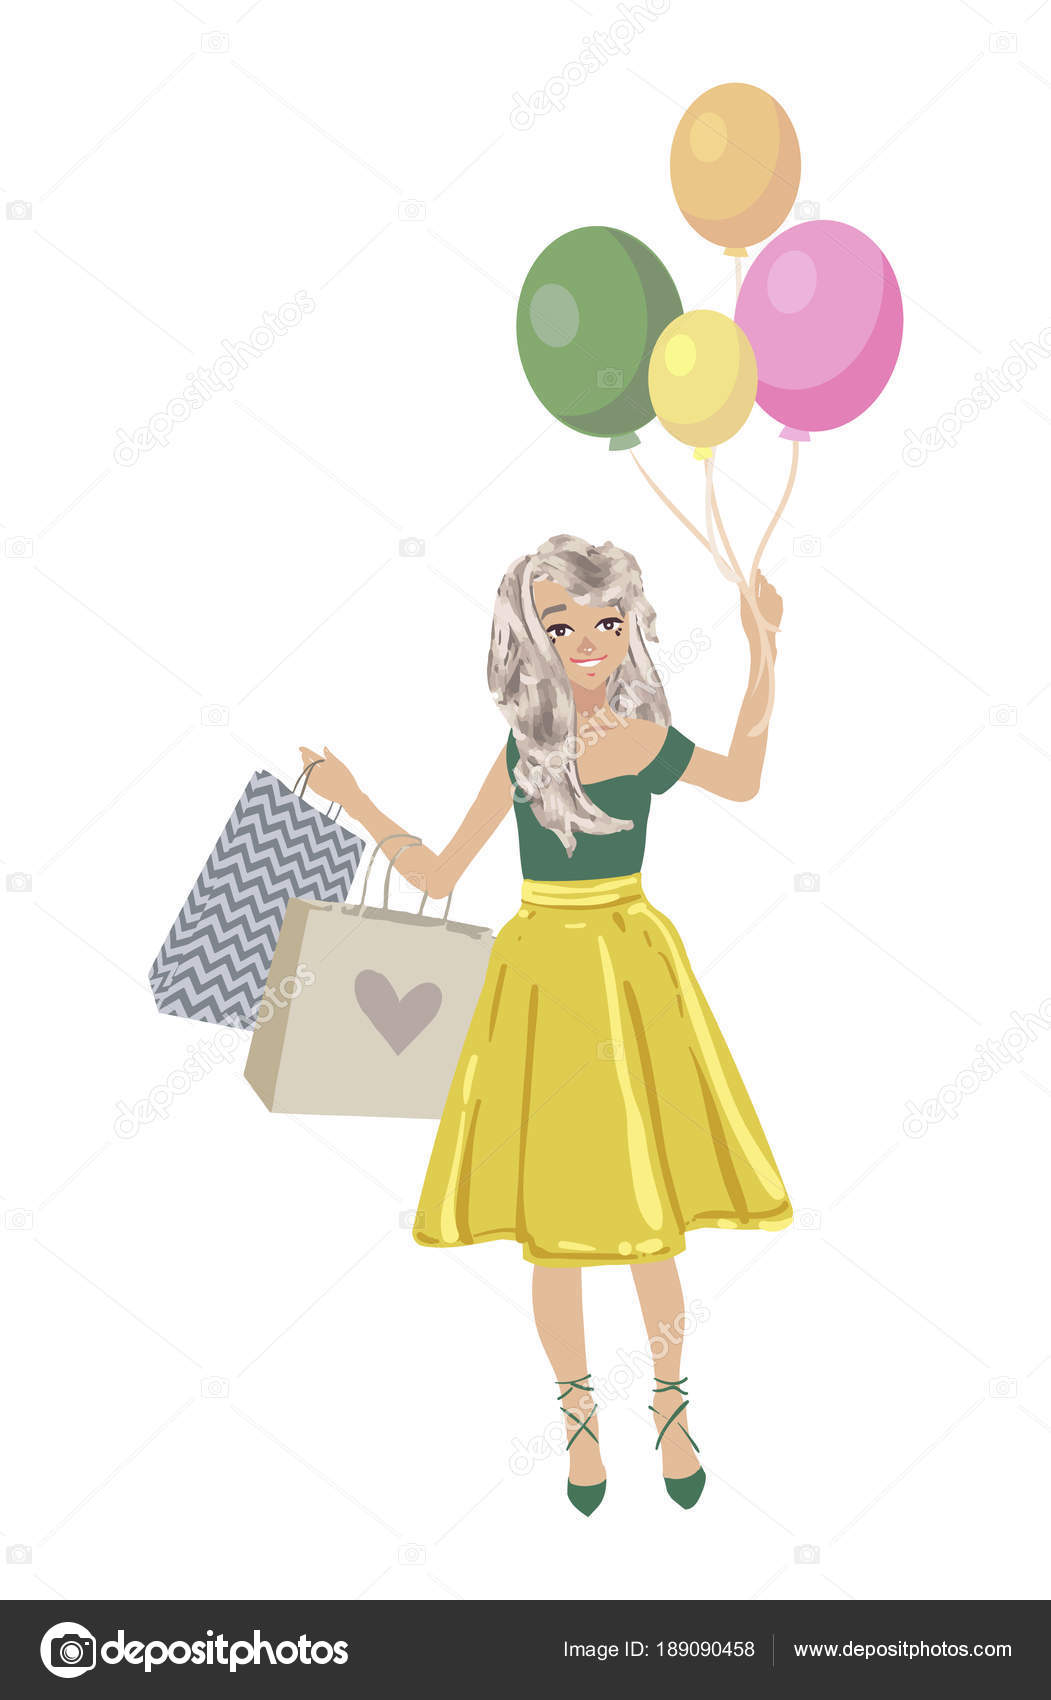 c0119398a Beautiful woman go shopping with bags and feeling happiness on white  background. Cute vector cartoon female character. Soft colors  illustration.– stock ...